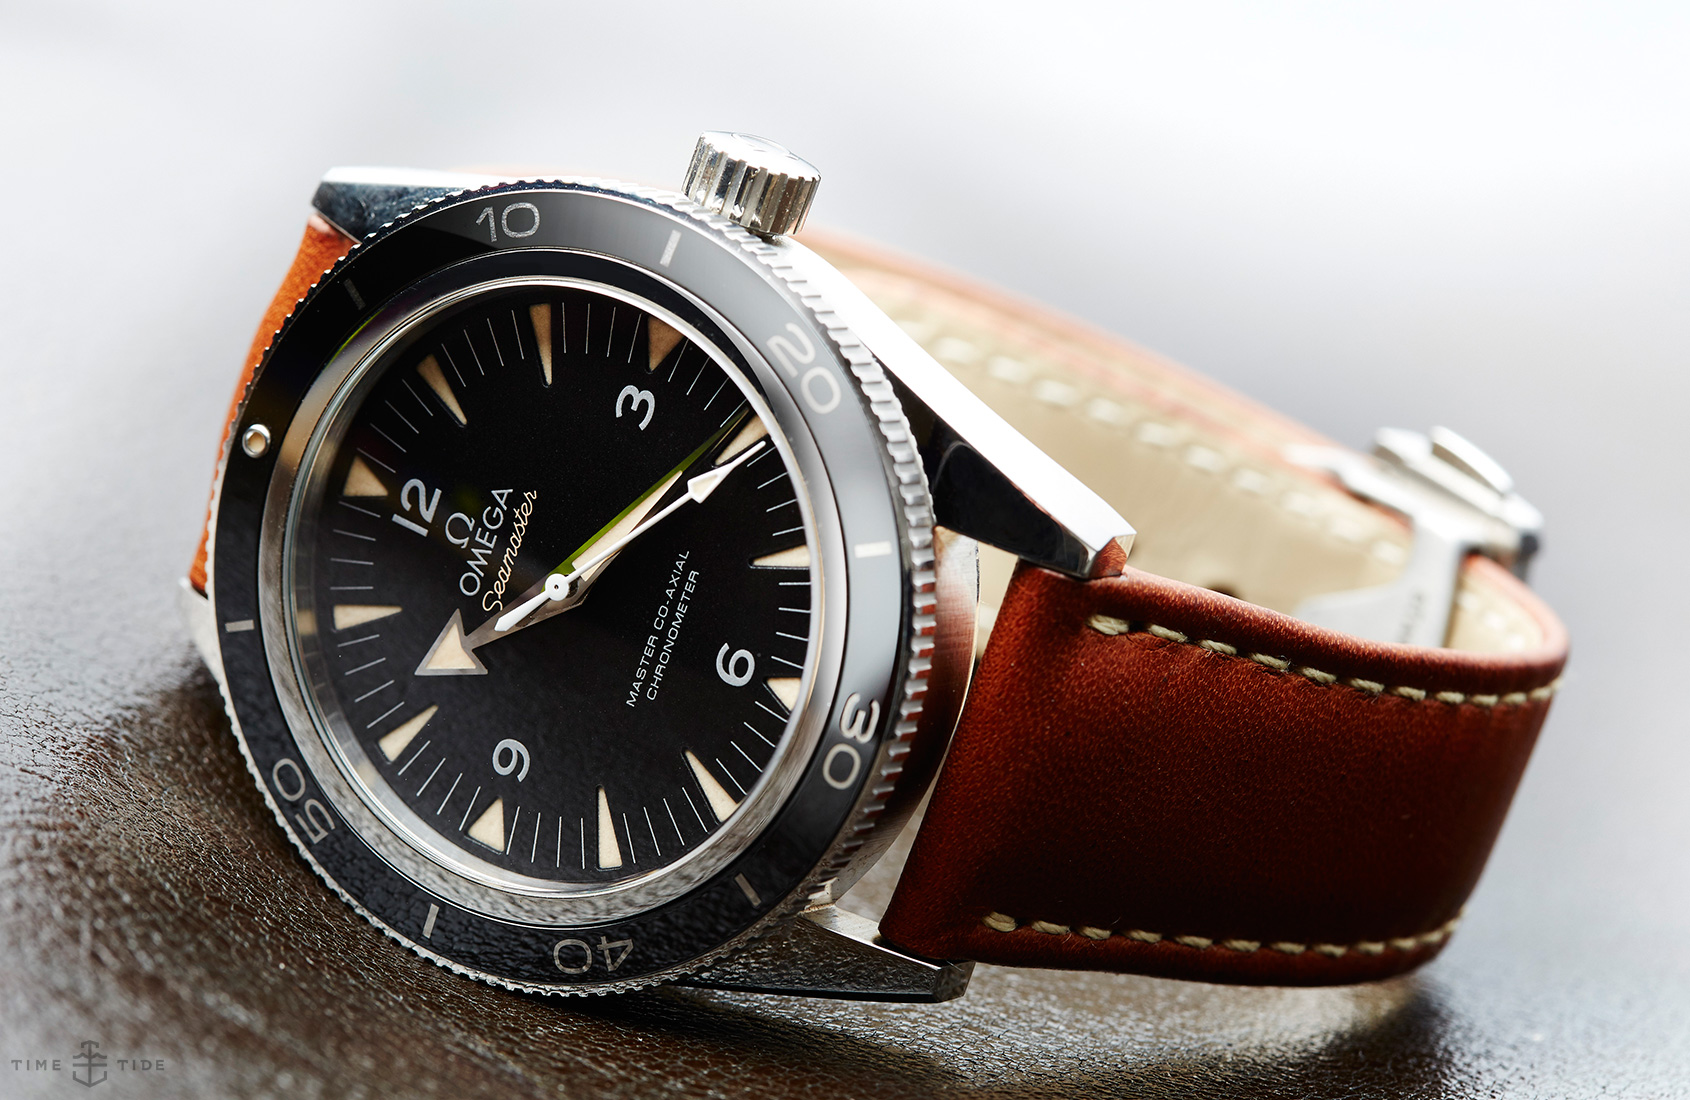 IN-DEPTH: The Omega Seamaster 300 Master Co-Axial